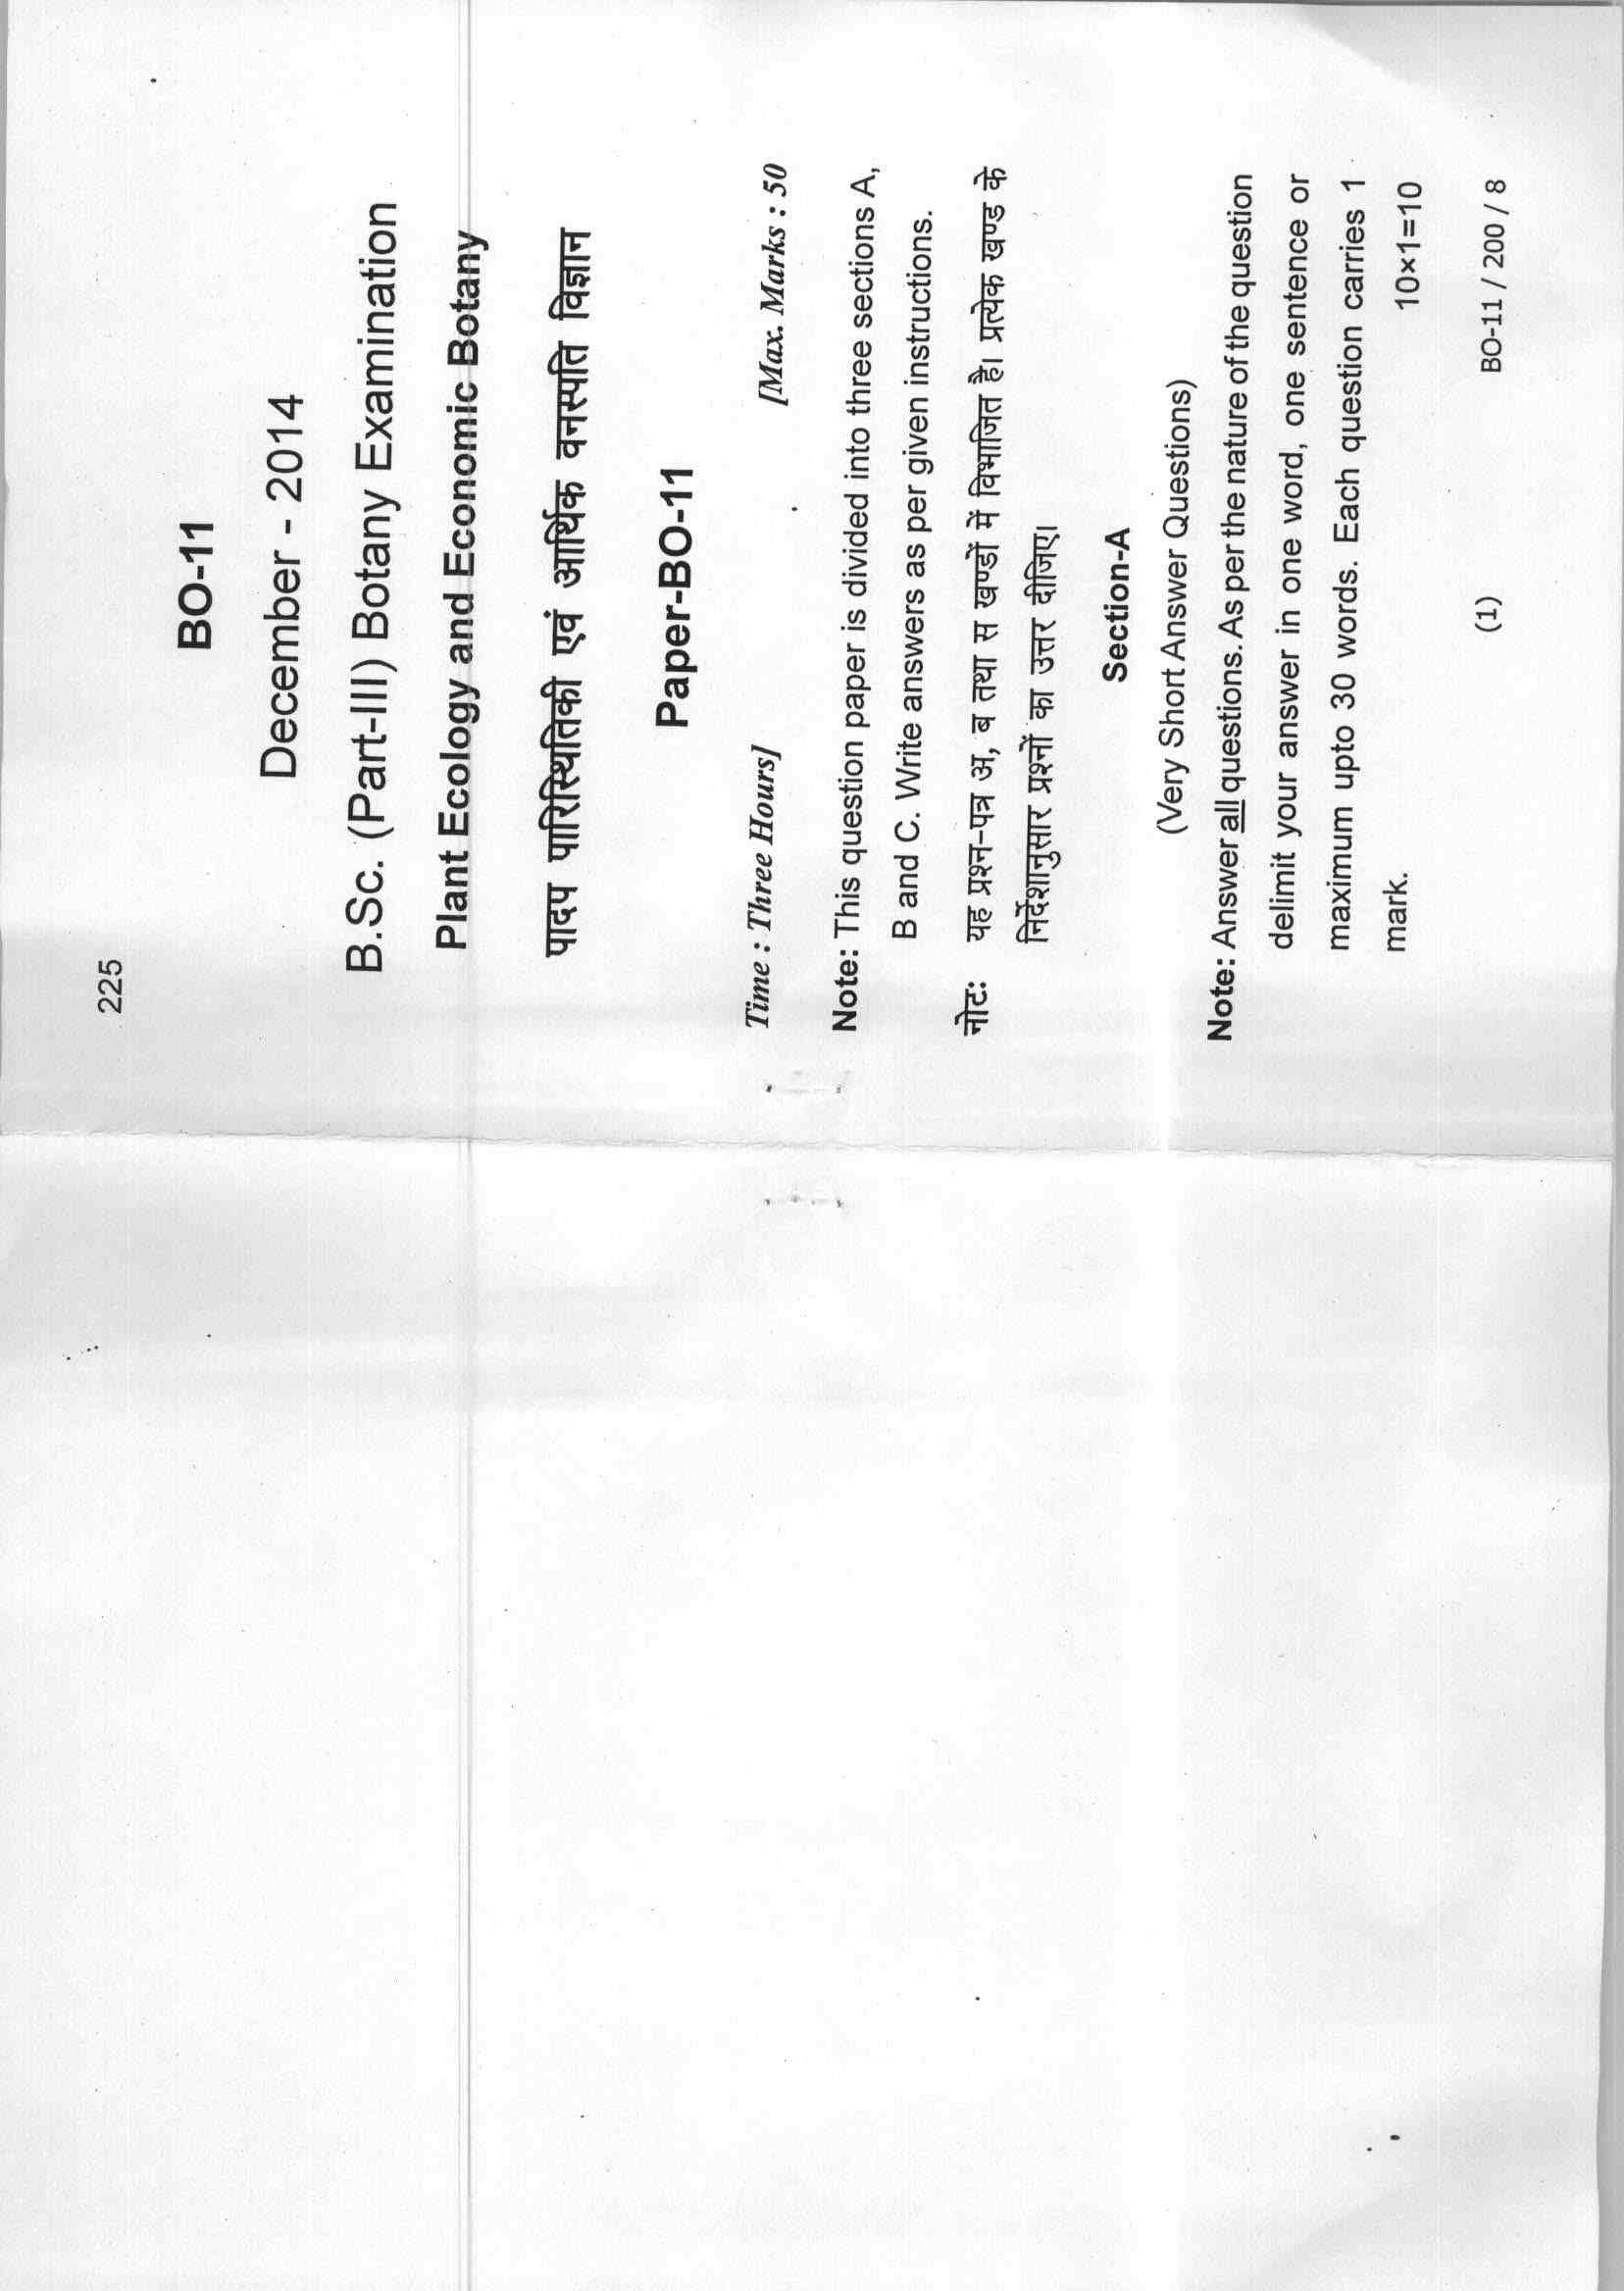 Index of /Question Papers/Exam DEC 2014